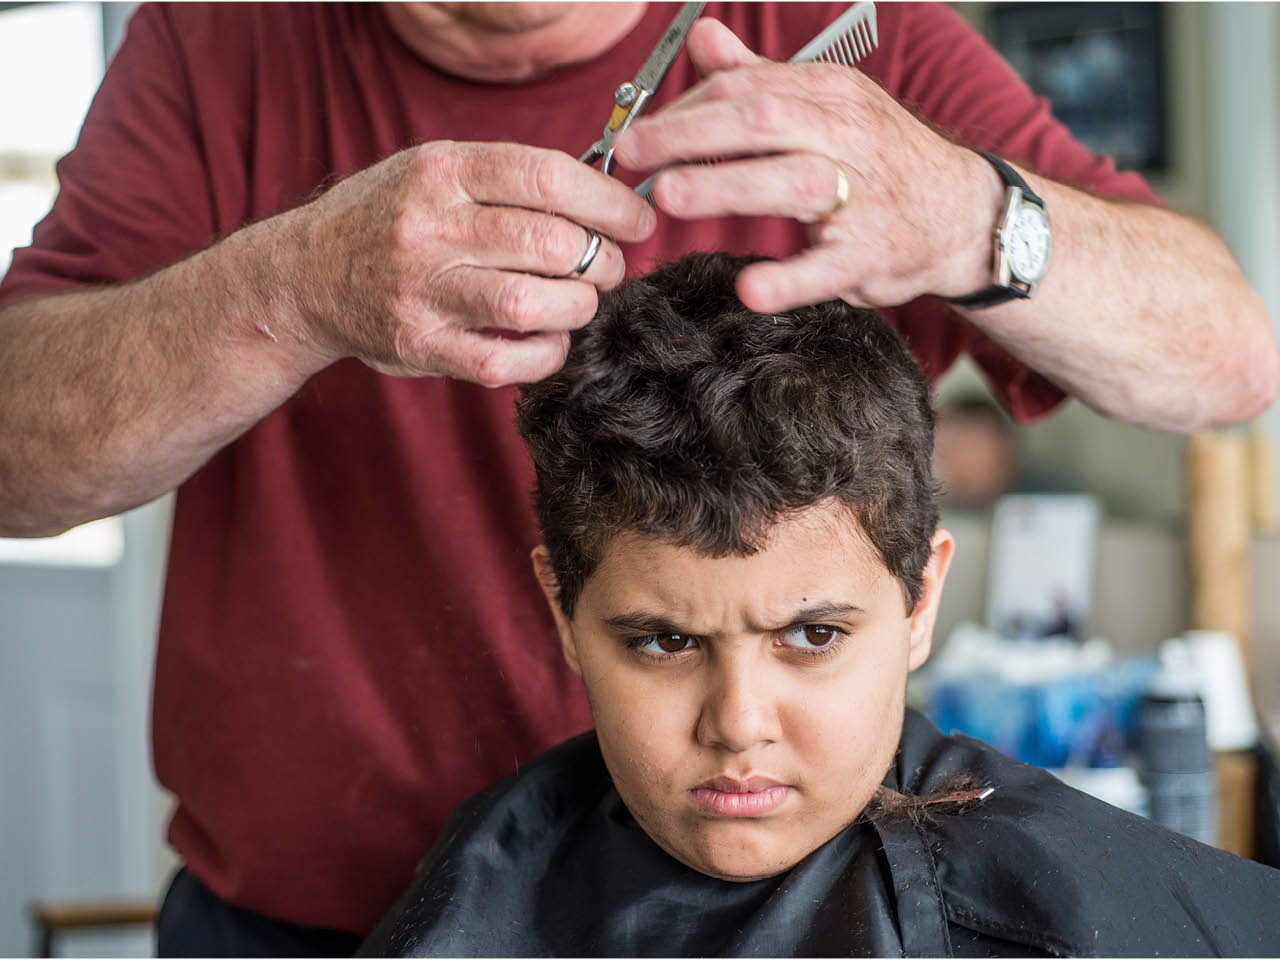 Autism Town - Gallery Image 1 - Elyas getting a haircut